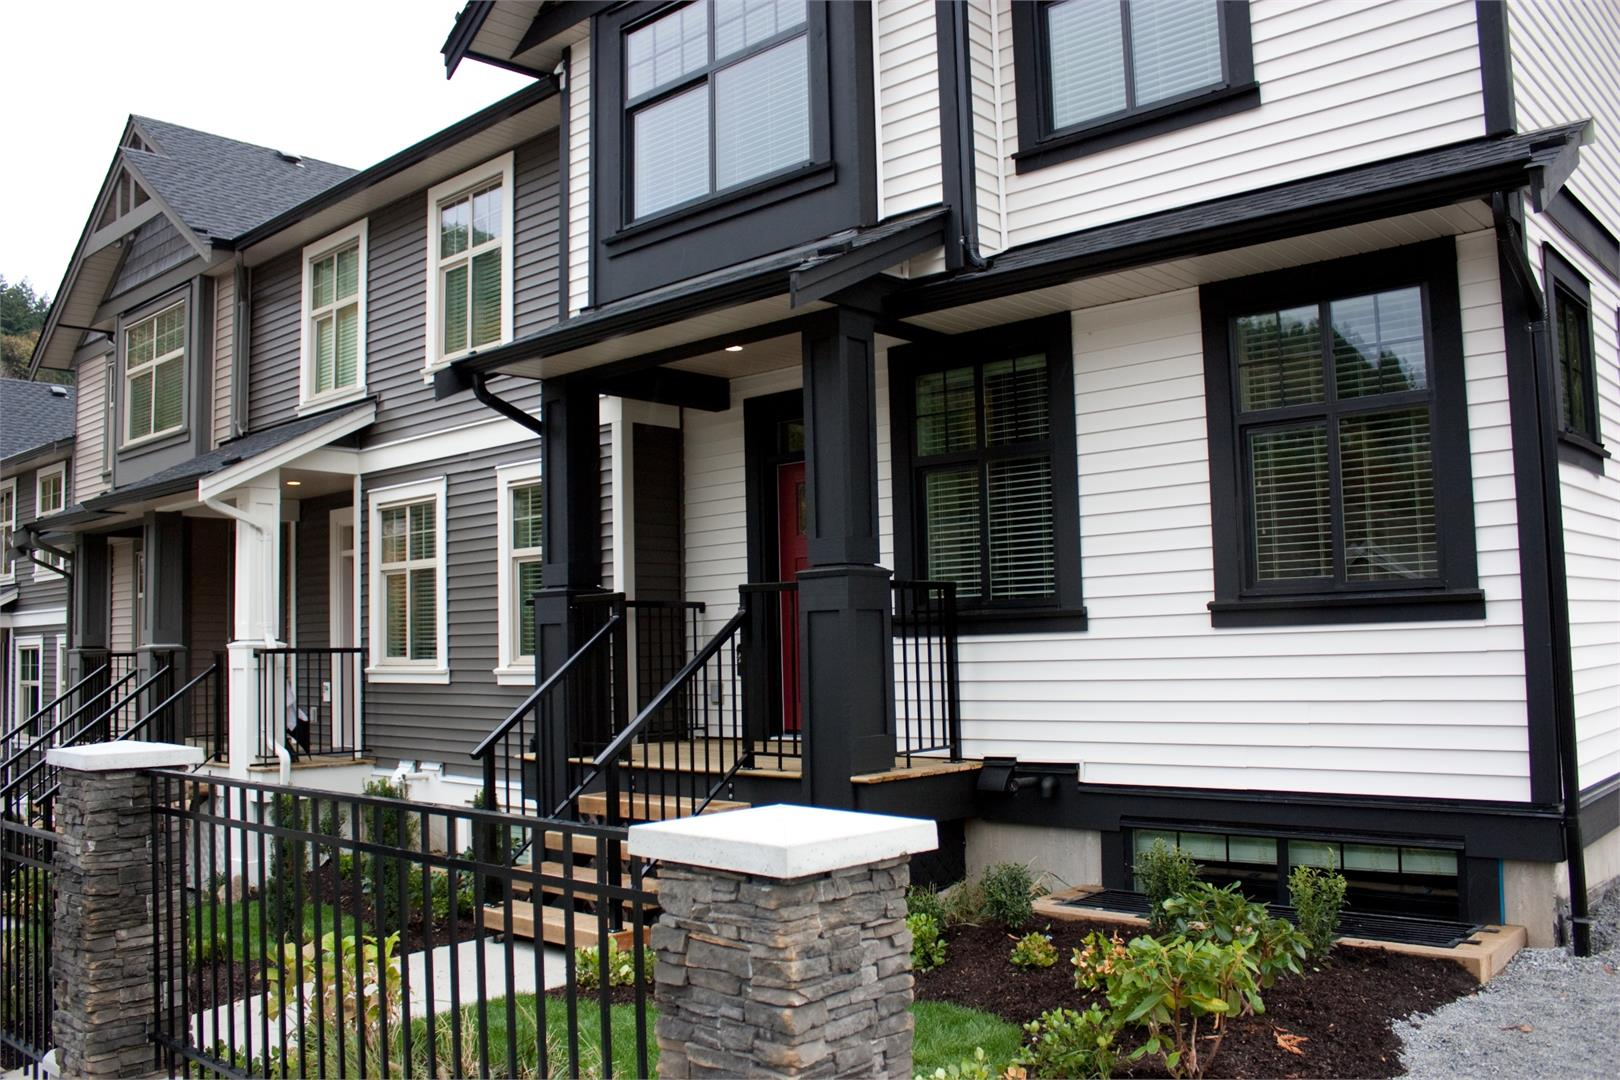 Eagle S Gate In Abbotsford Bc Prices Plans Availability